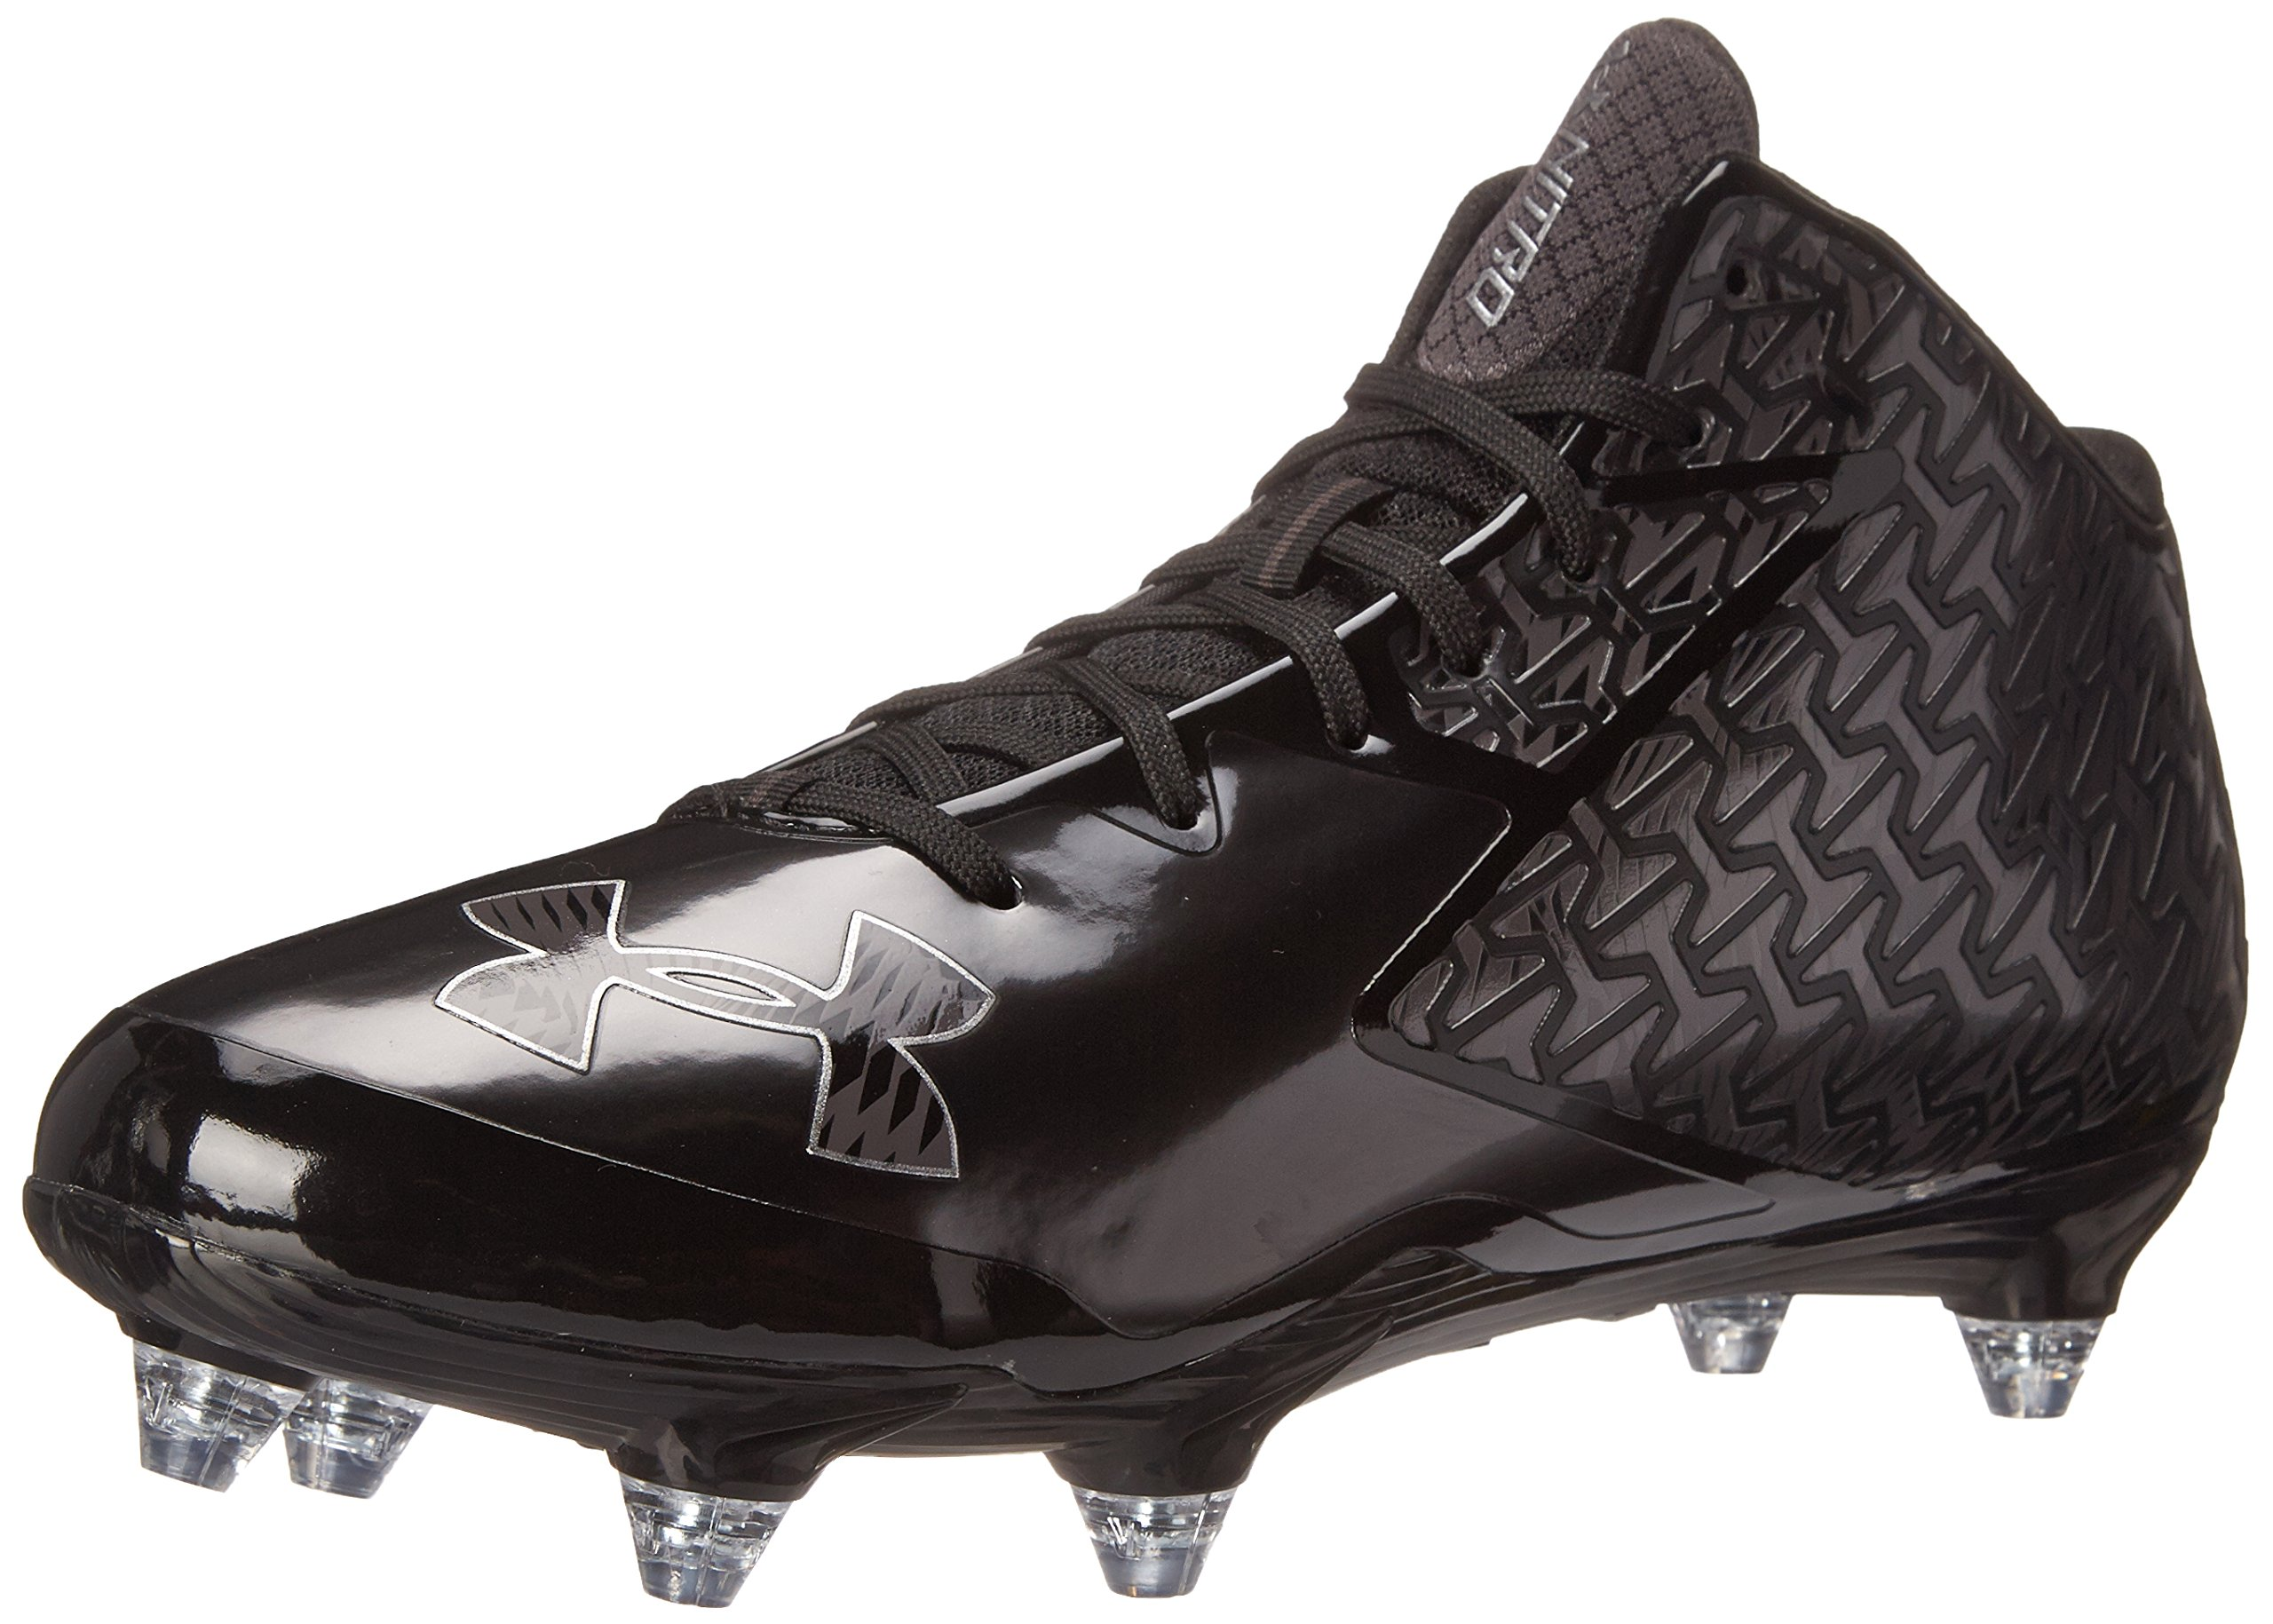 Under Armour Men's Nitro Mid Detachable Football Shoe, Black (003)/Charcoal, 6.5